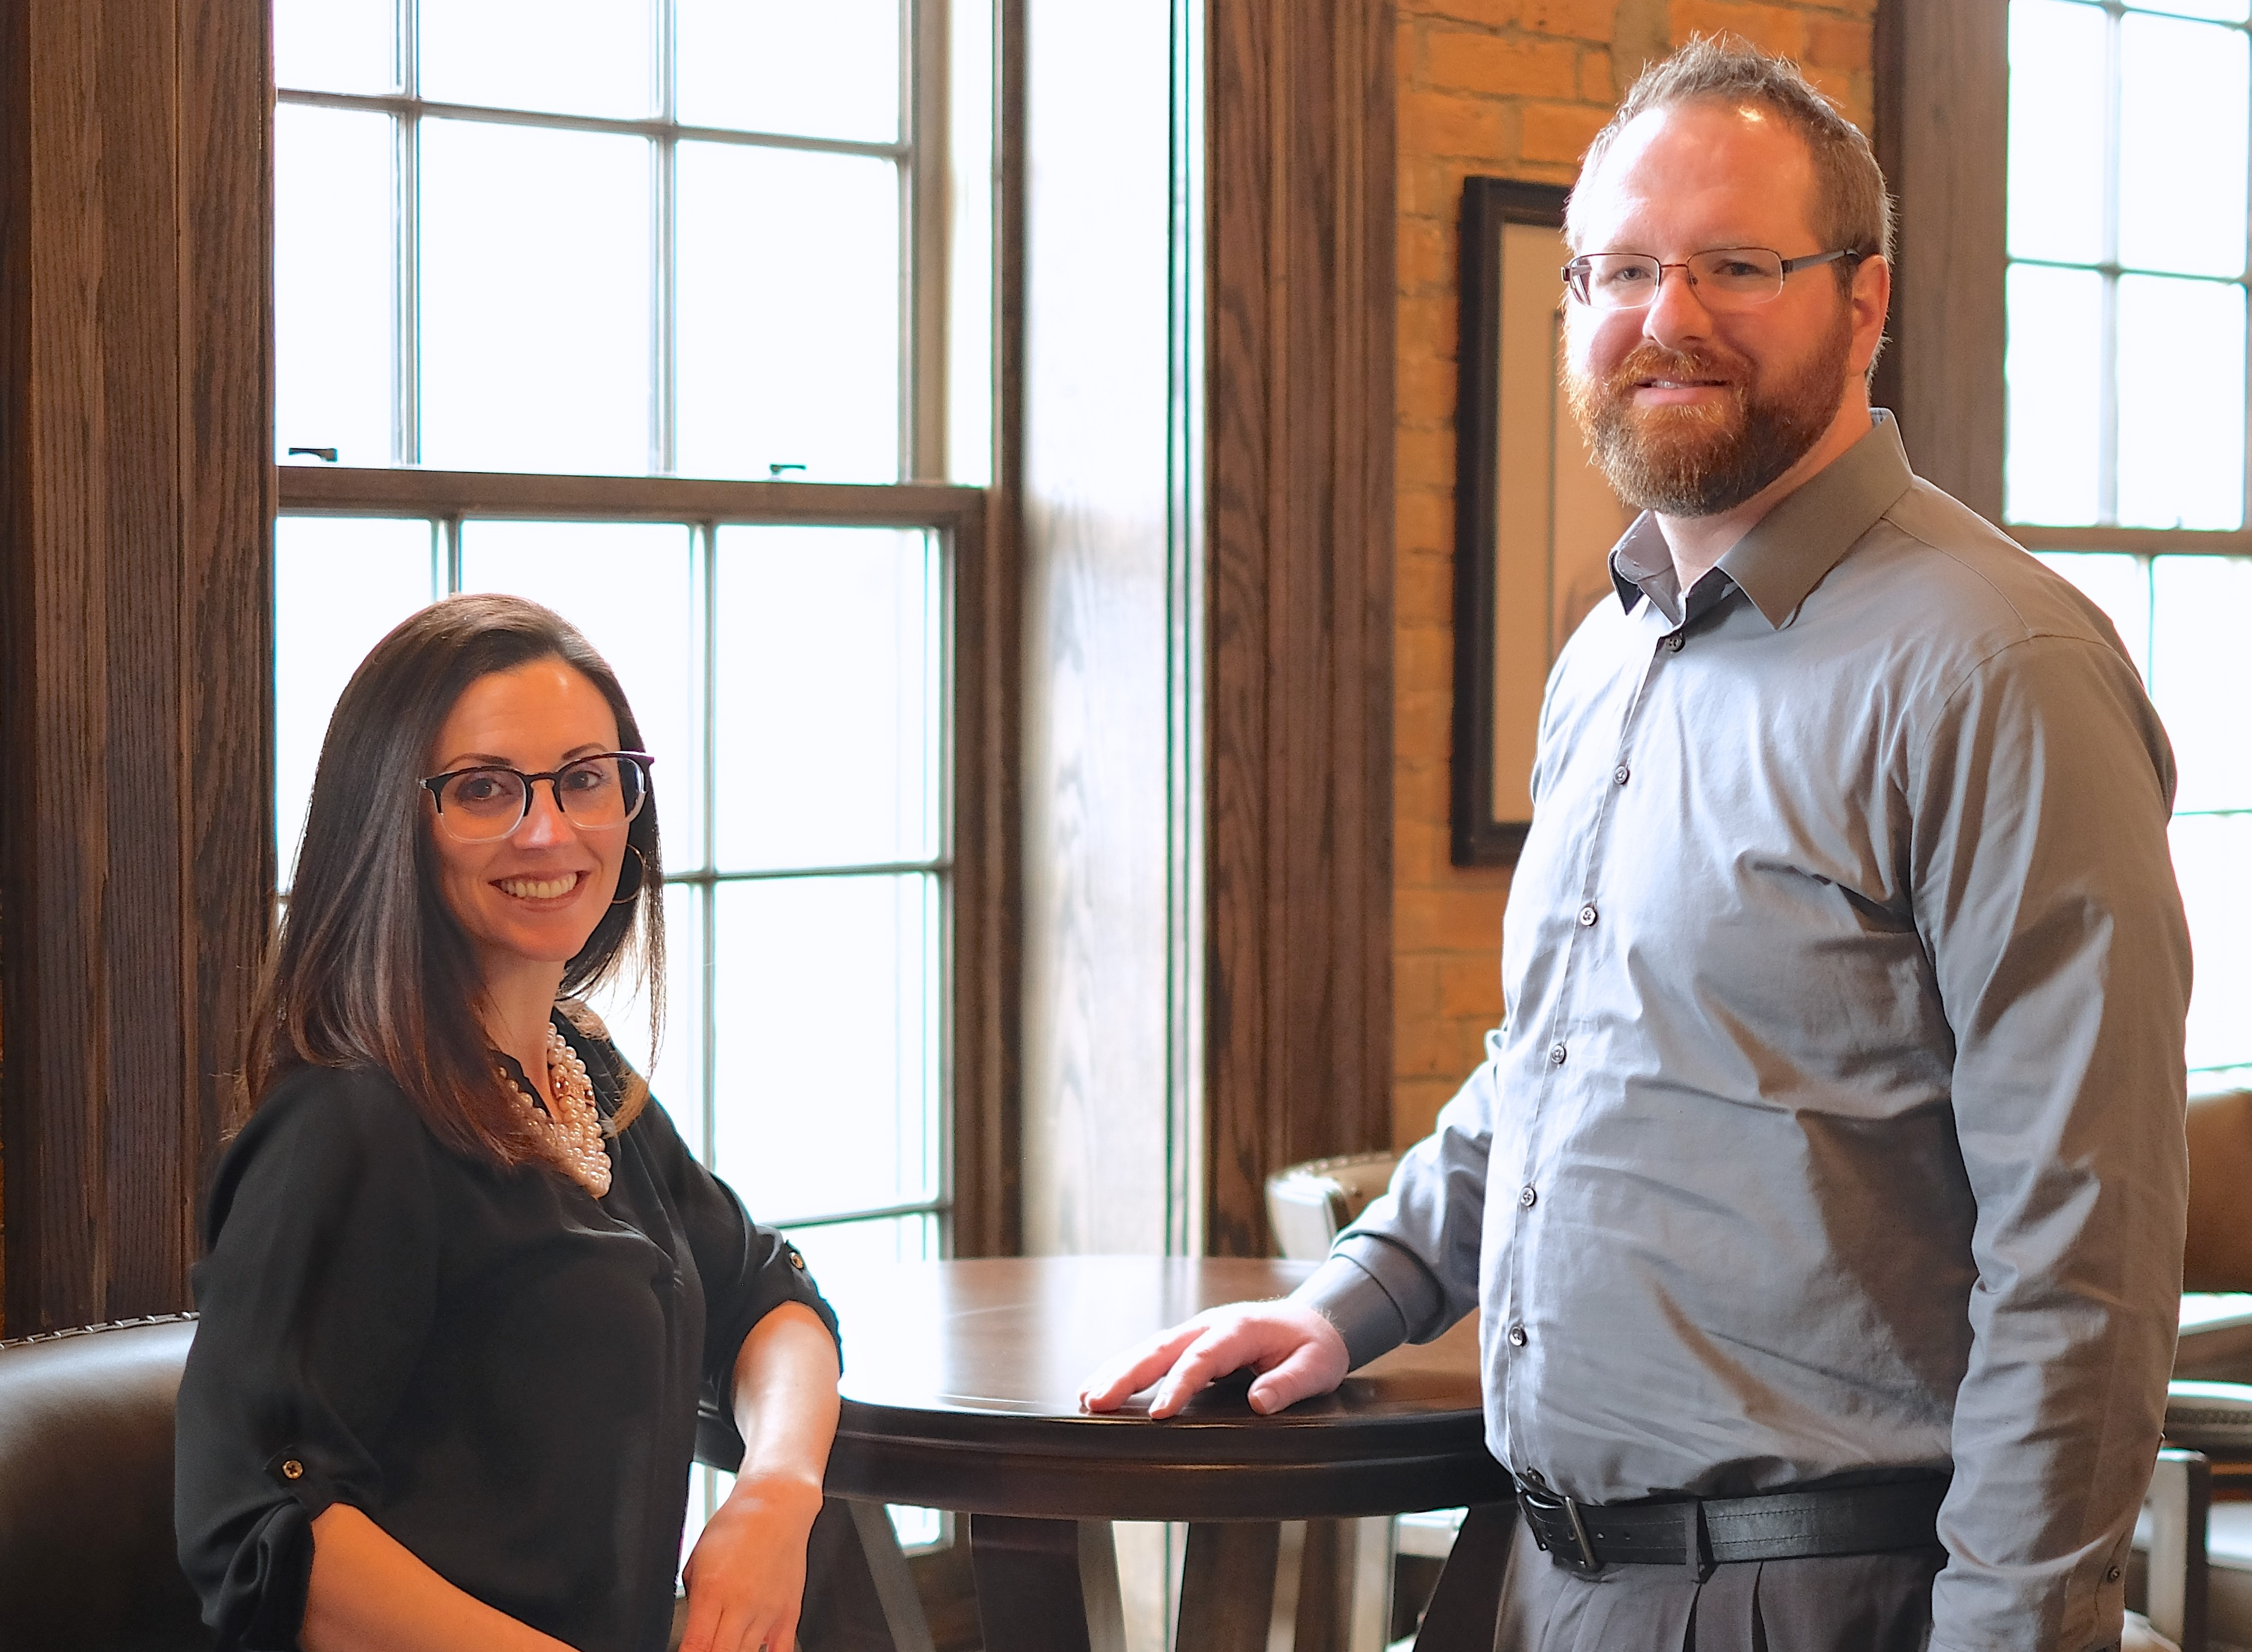 Eric & Chilah provide Michigan HR consulting services